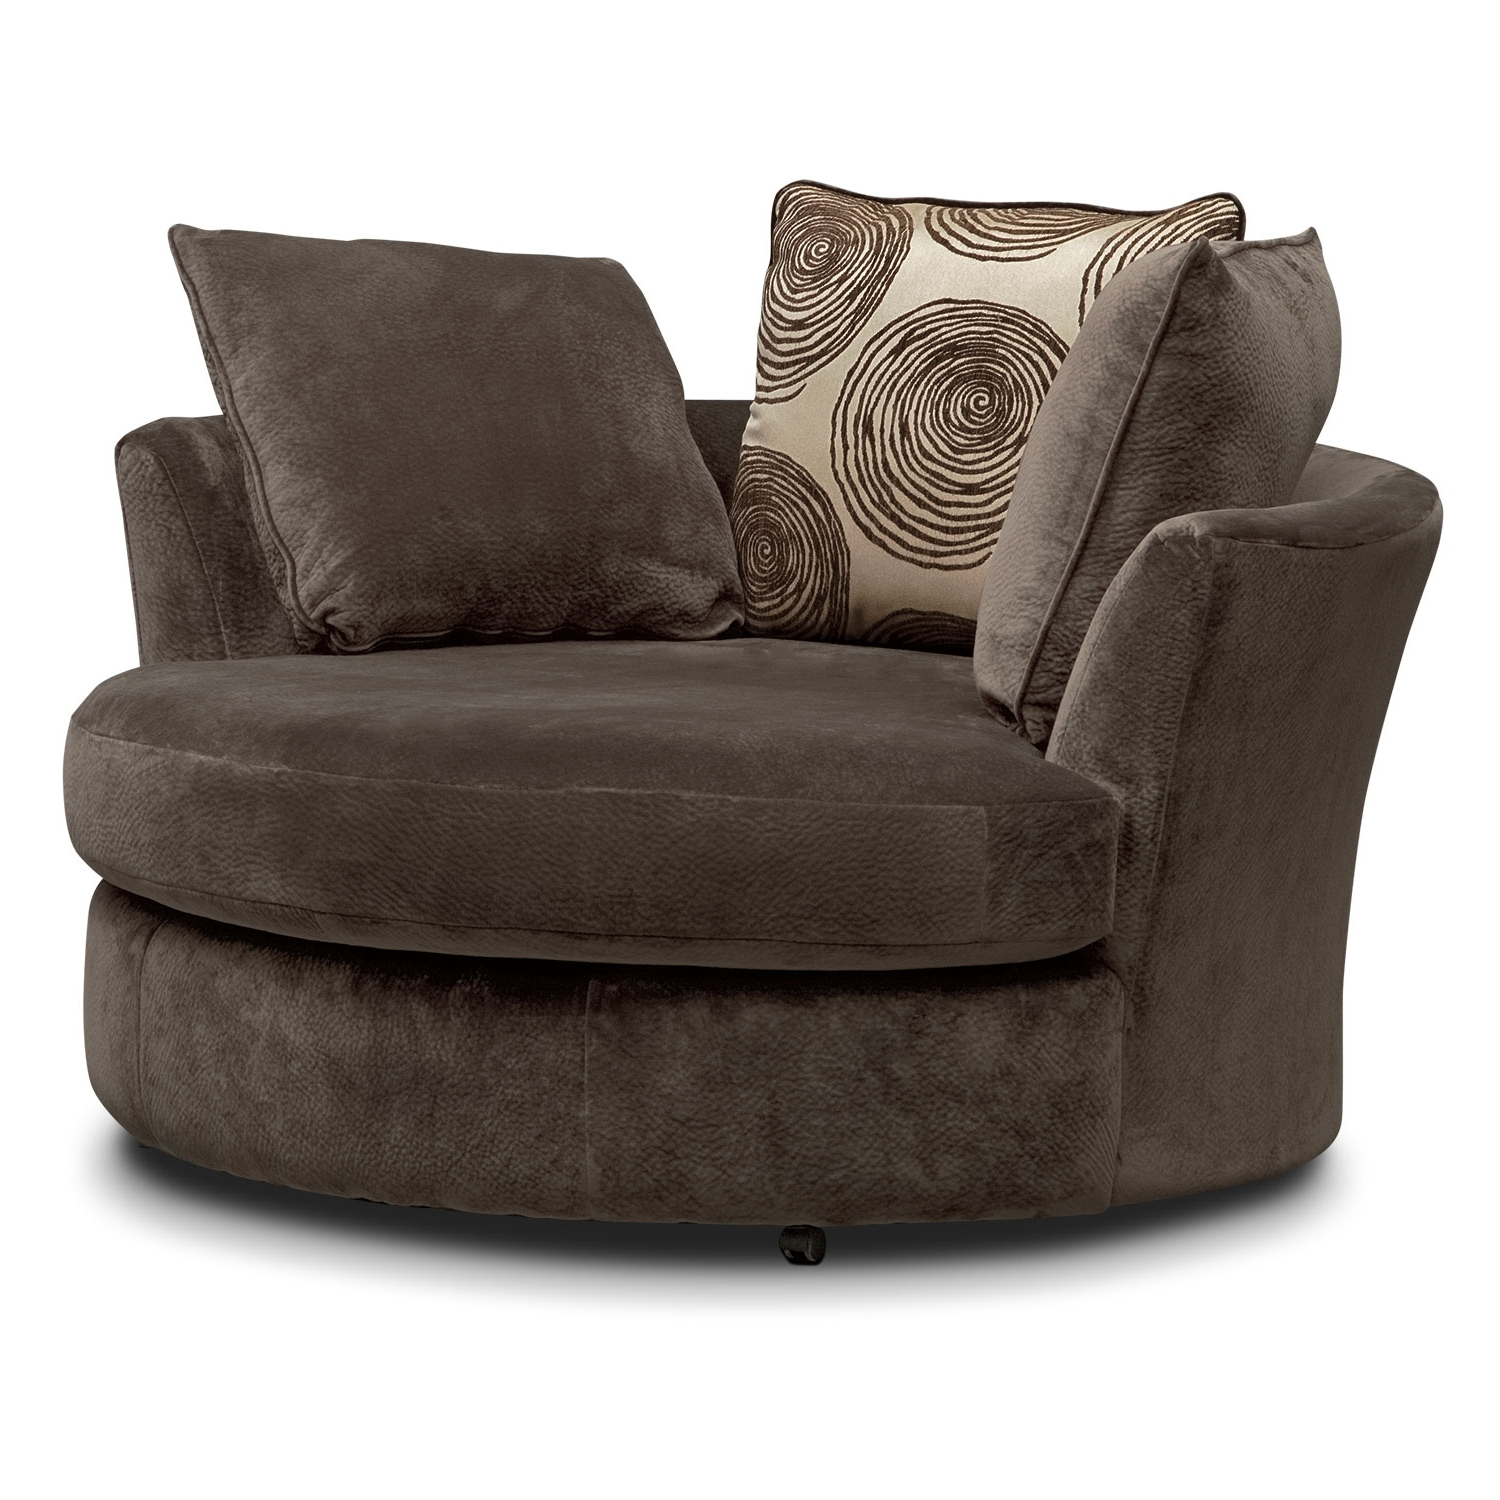 Value City Furniture And Intended For Favorite Spinning Sofa Chairs (Gallery 2 of 15)